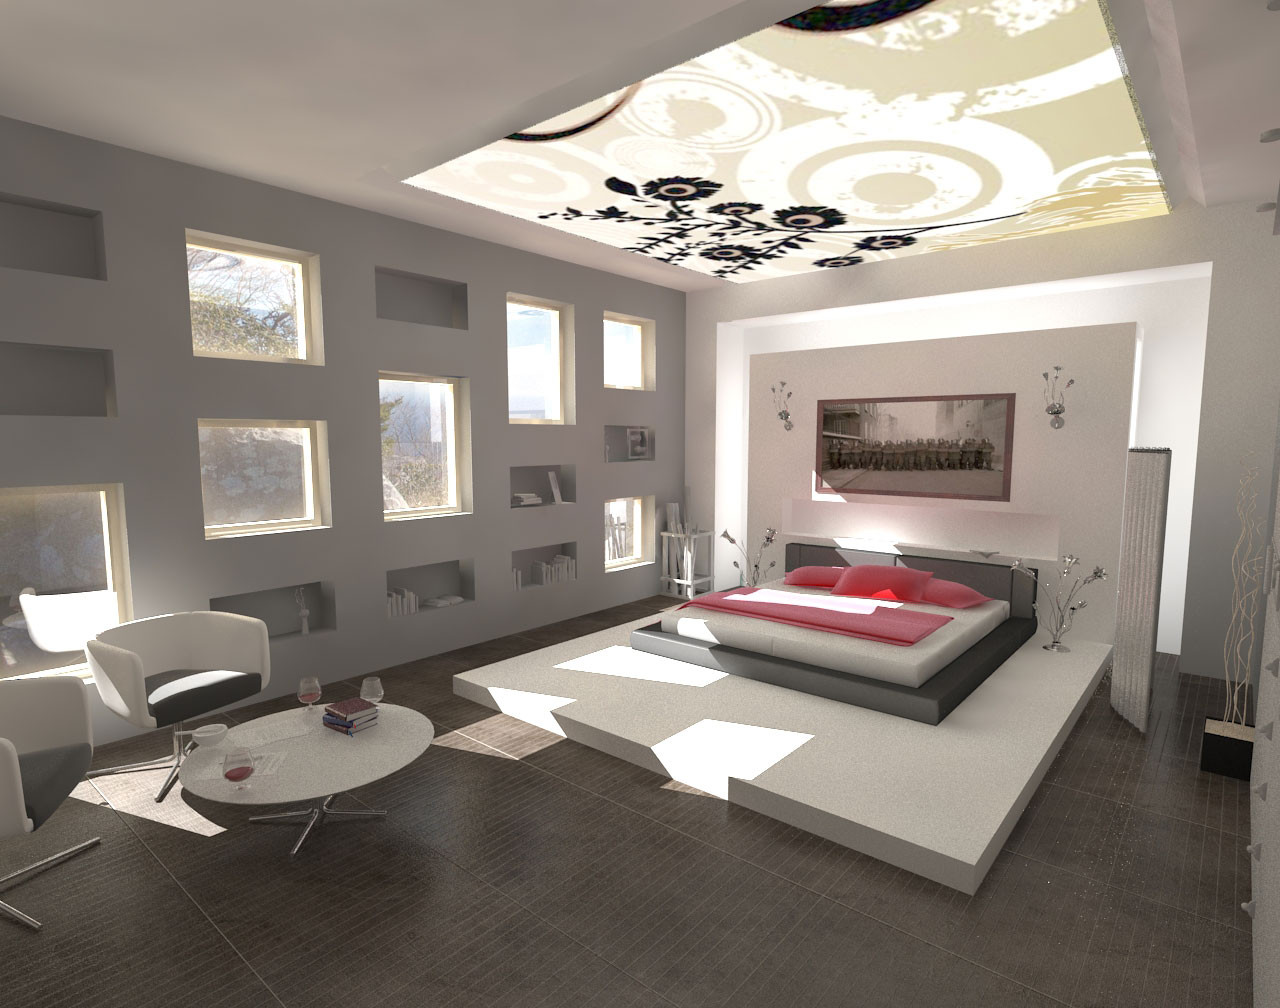 Best ideas about Cool Bedroom Ideas . Save or Pin Fantastic Modern Bedroom Paints Colors Ideas Now.